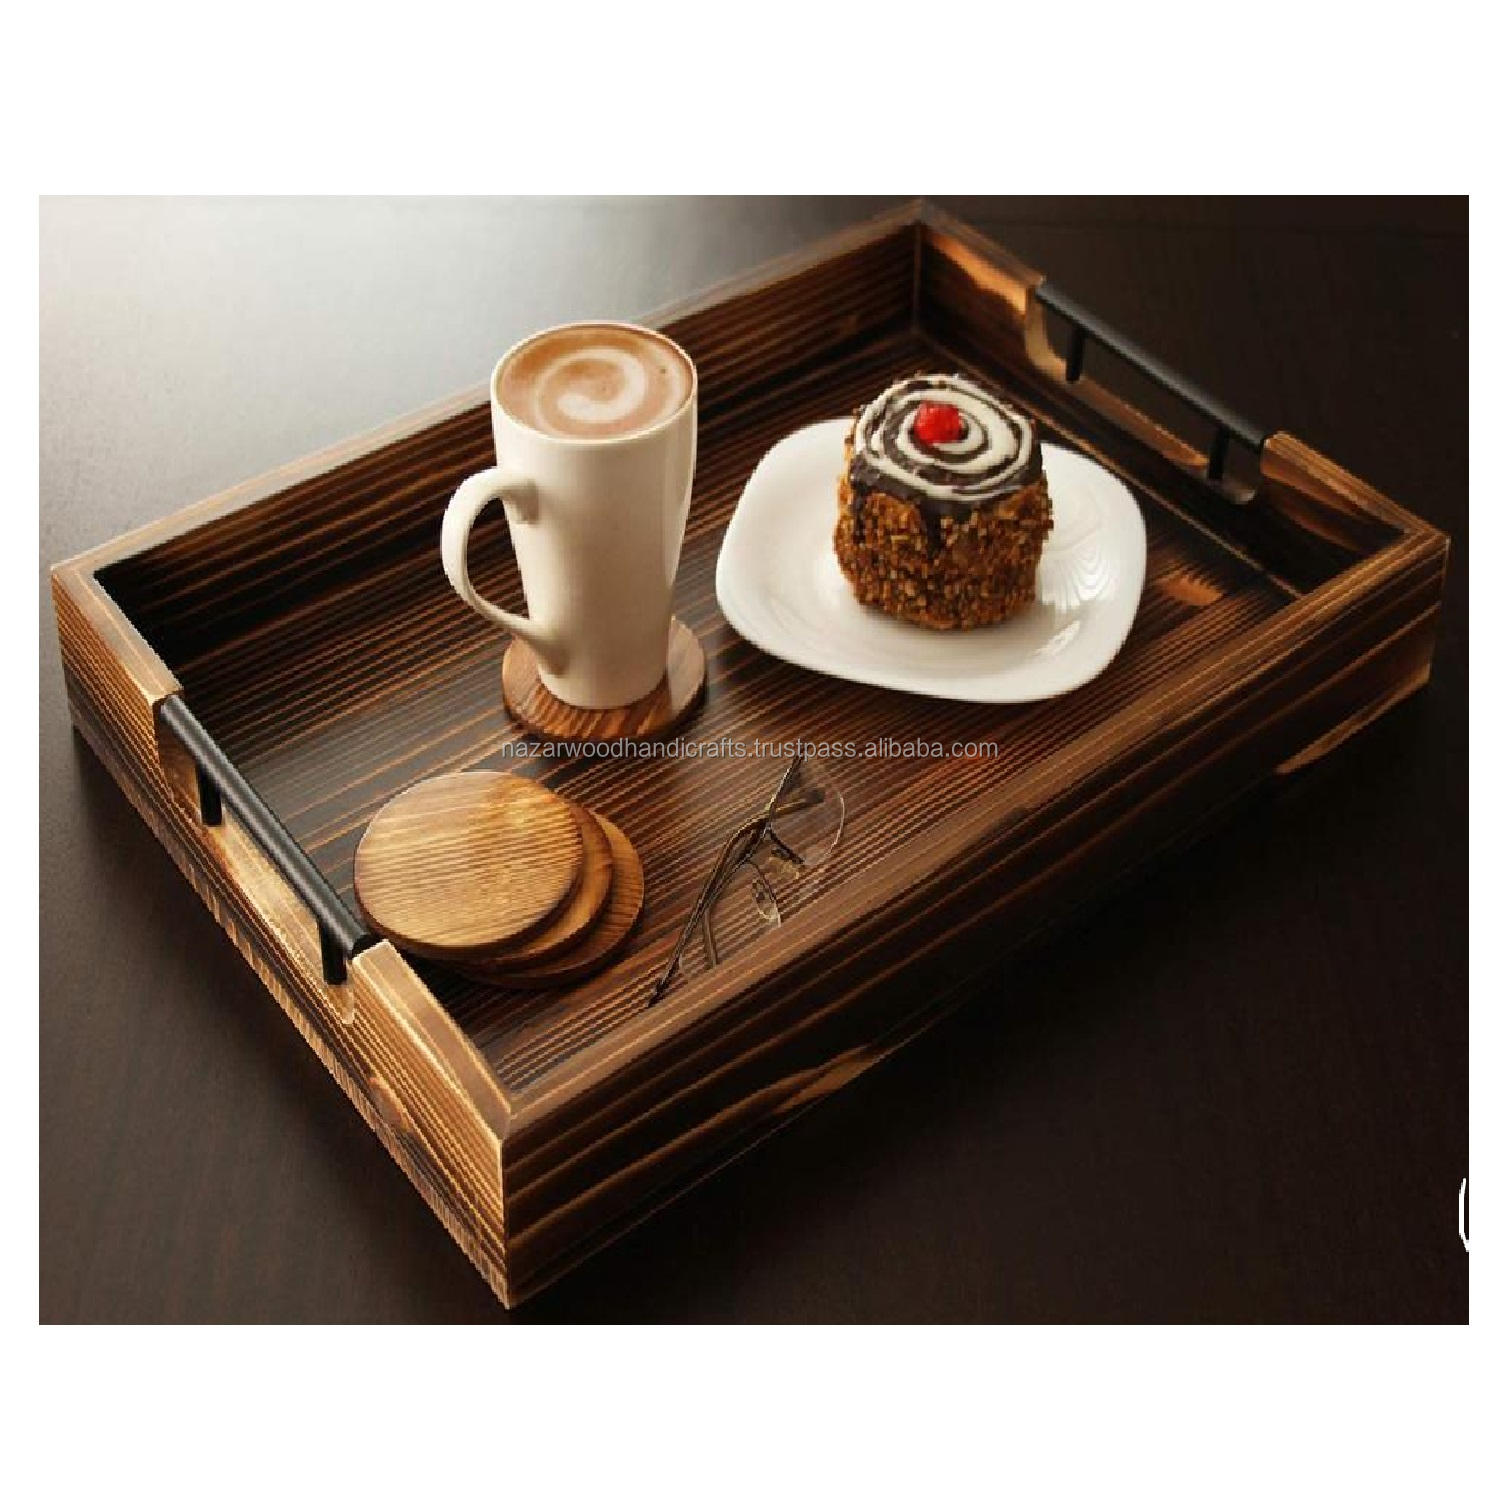 ECO FRIENDLY WOODEN HAND MADE KITCHEN SERVING TRAY ITEM